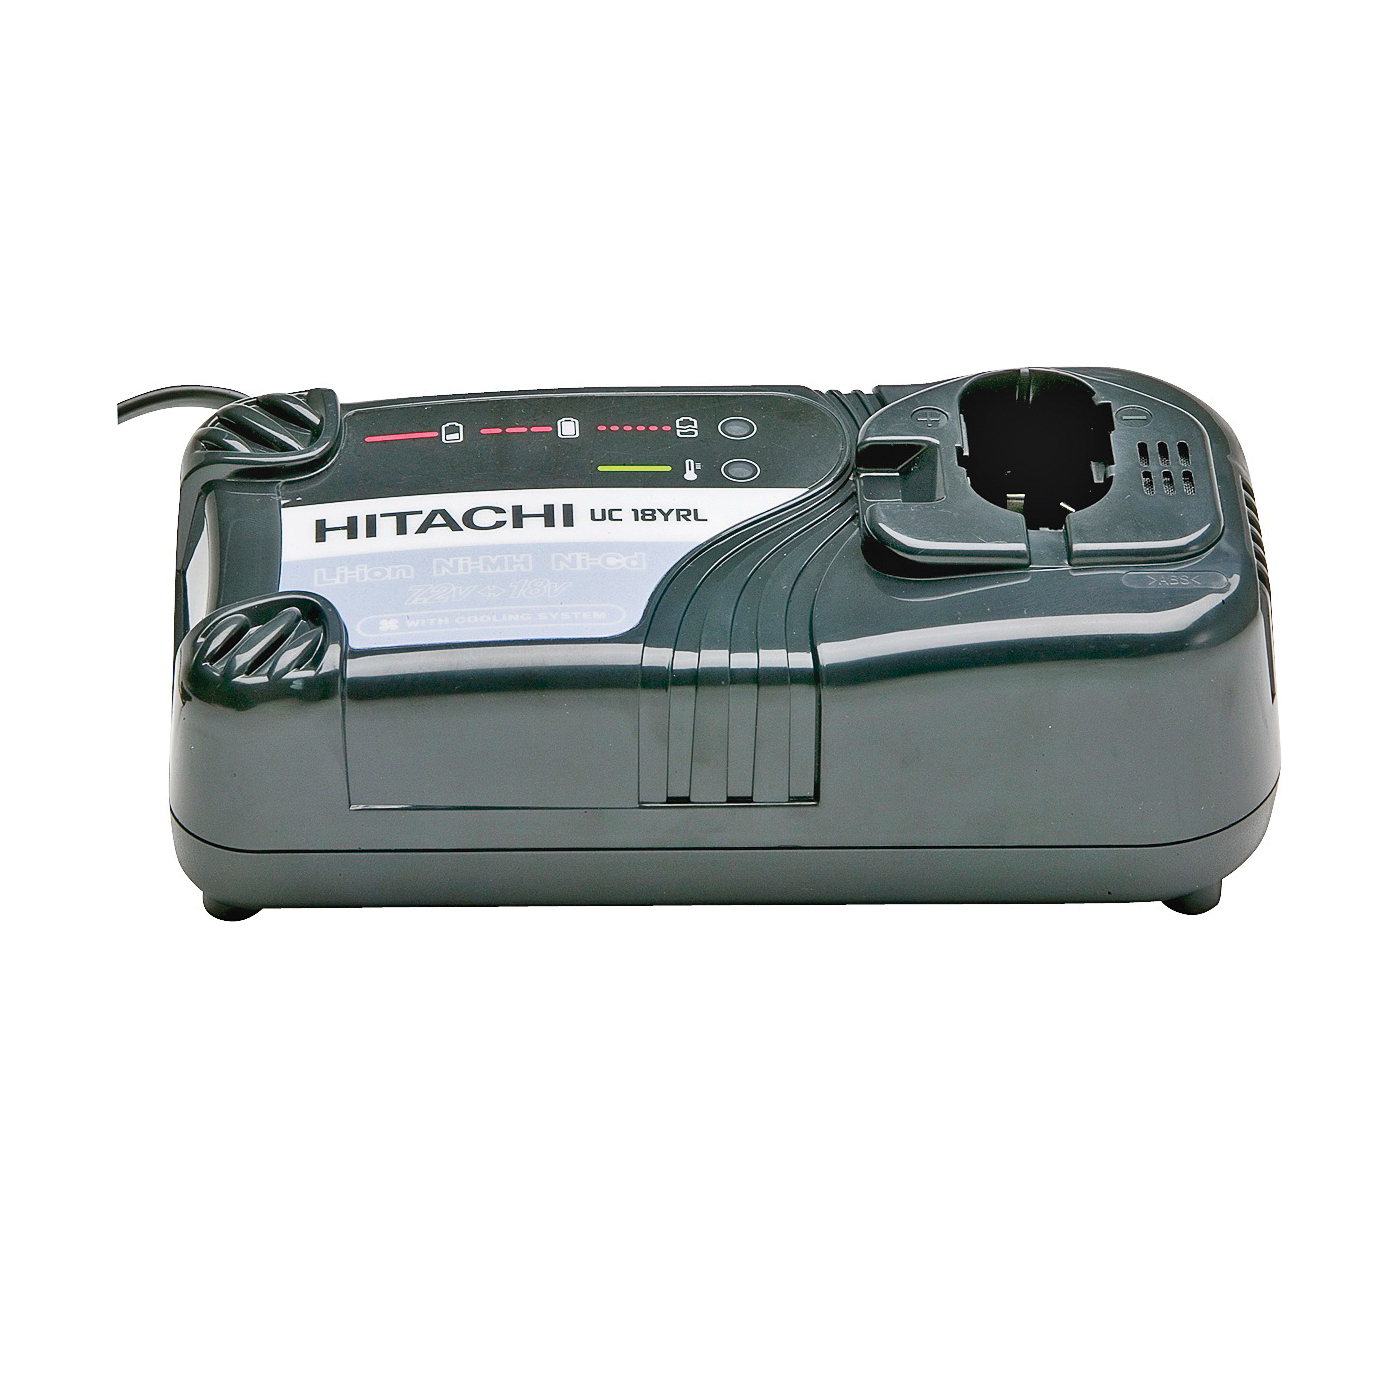 Picture of Metabo HPT UC18YRLM Battery Charger, 7.2 to 18 V Output, 45 min Charge, 3 -Battery, Battery Included: No